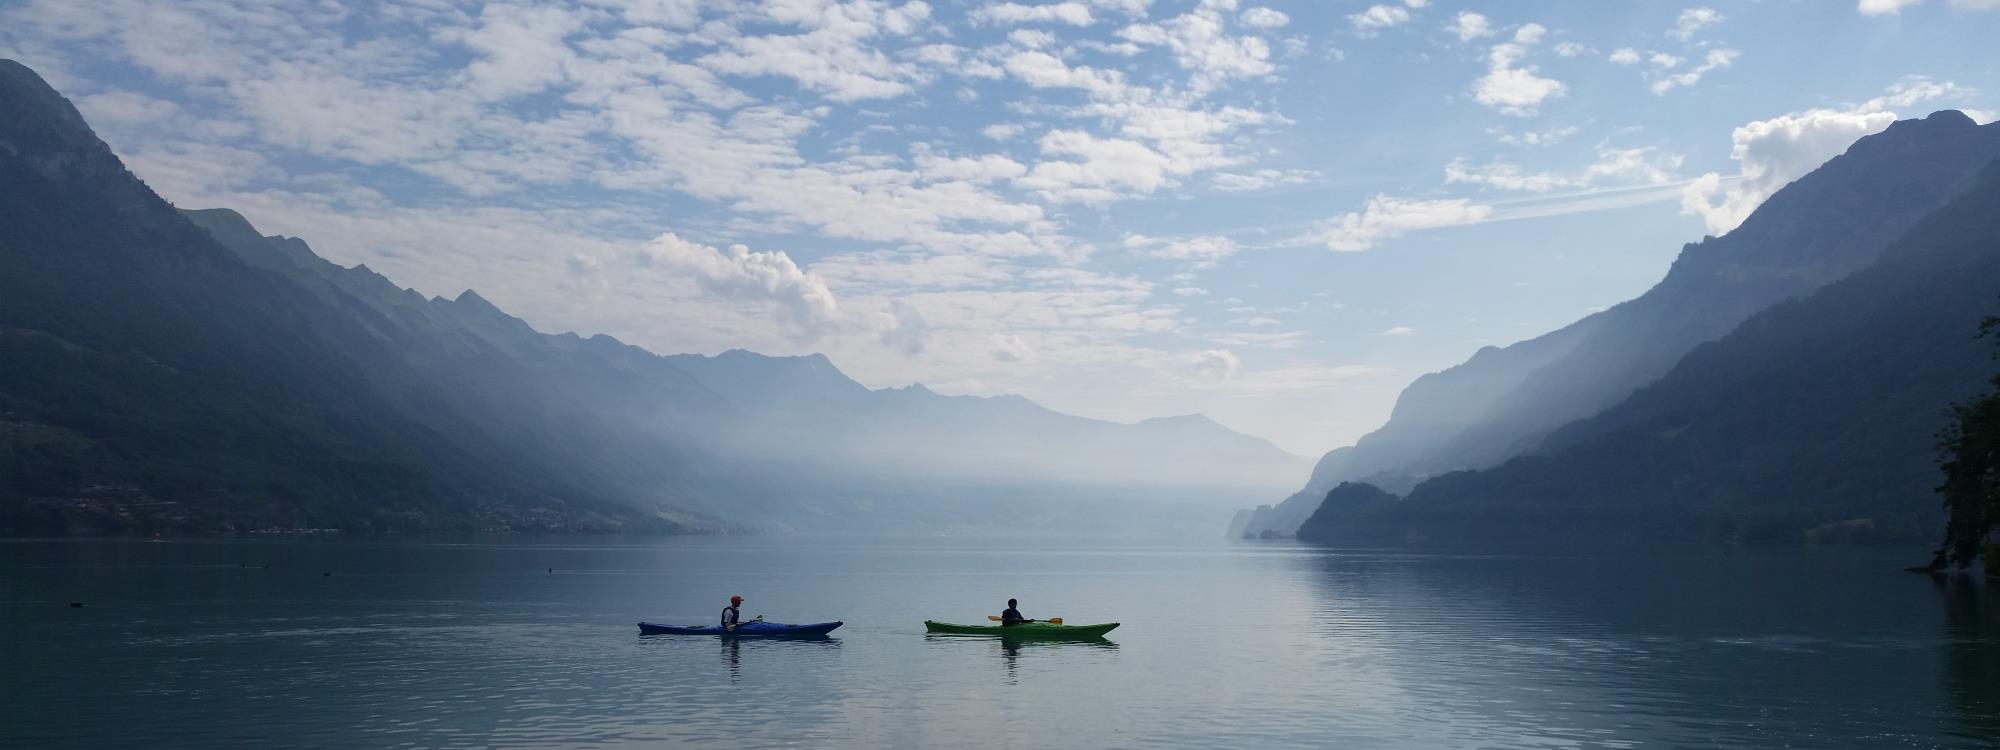 KAYAKING ON LAKE THUN AND LAKE BRIENZ